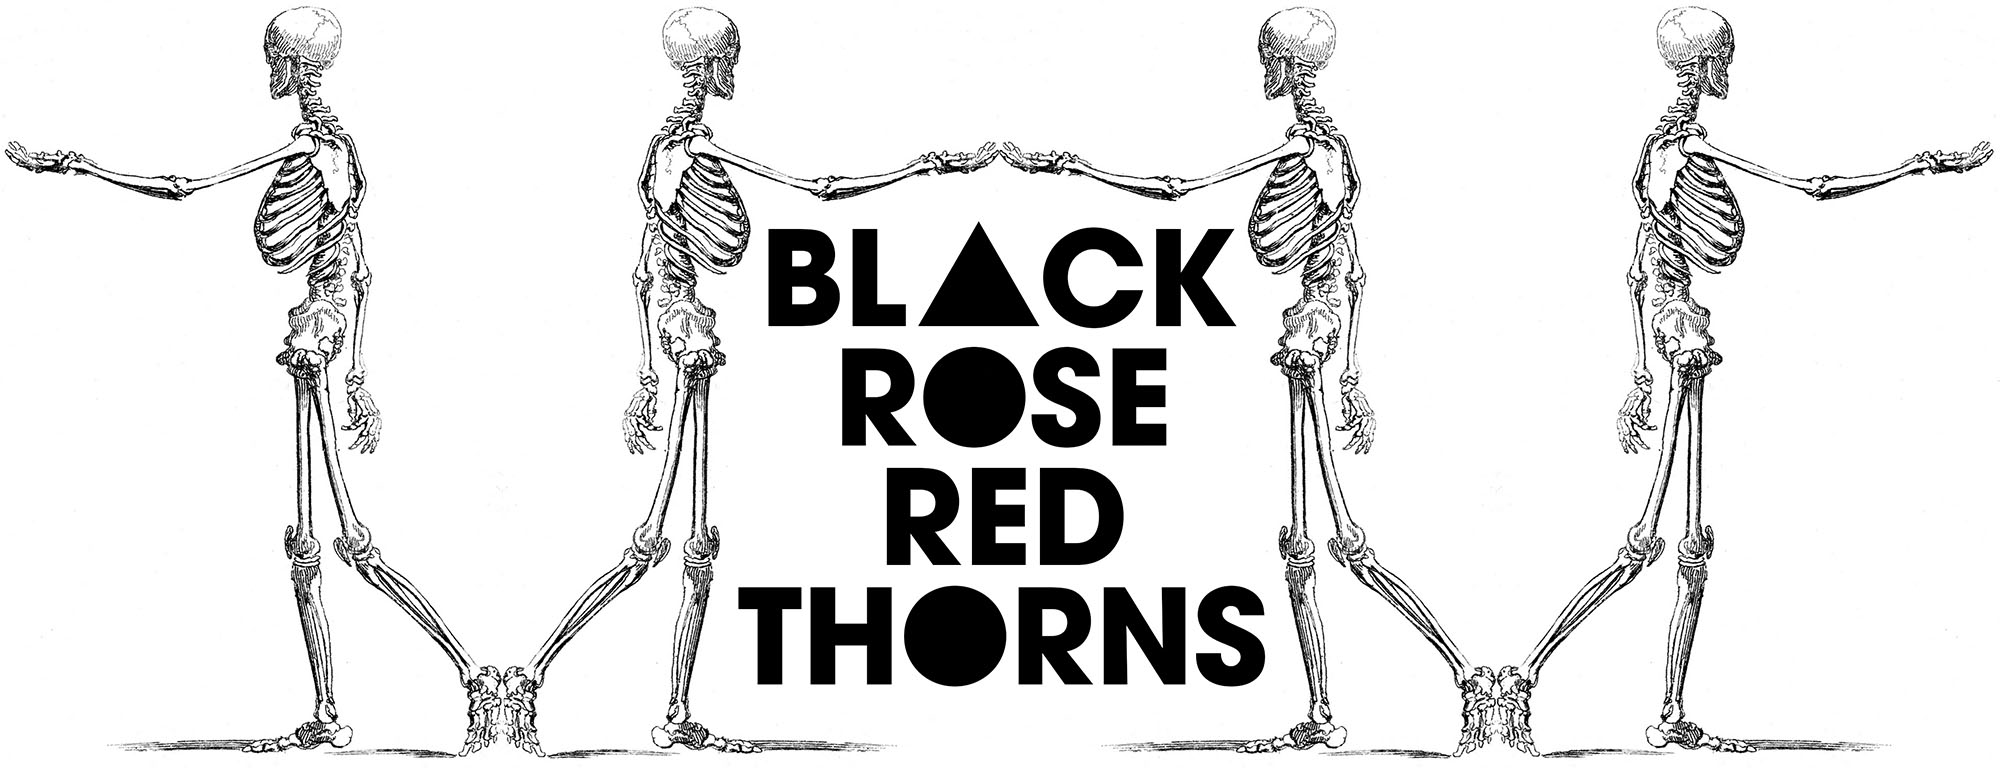 Black Rose Red Thorns